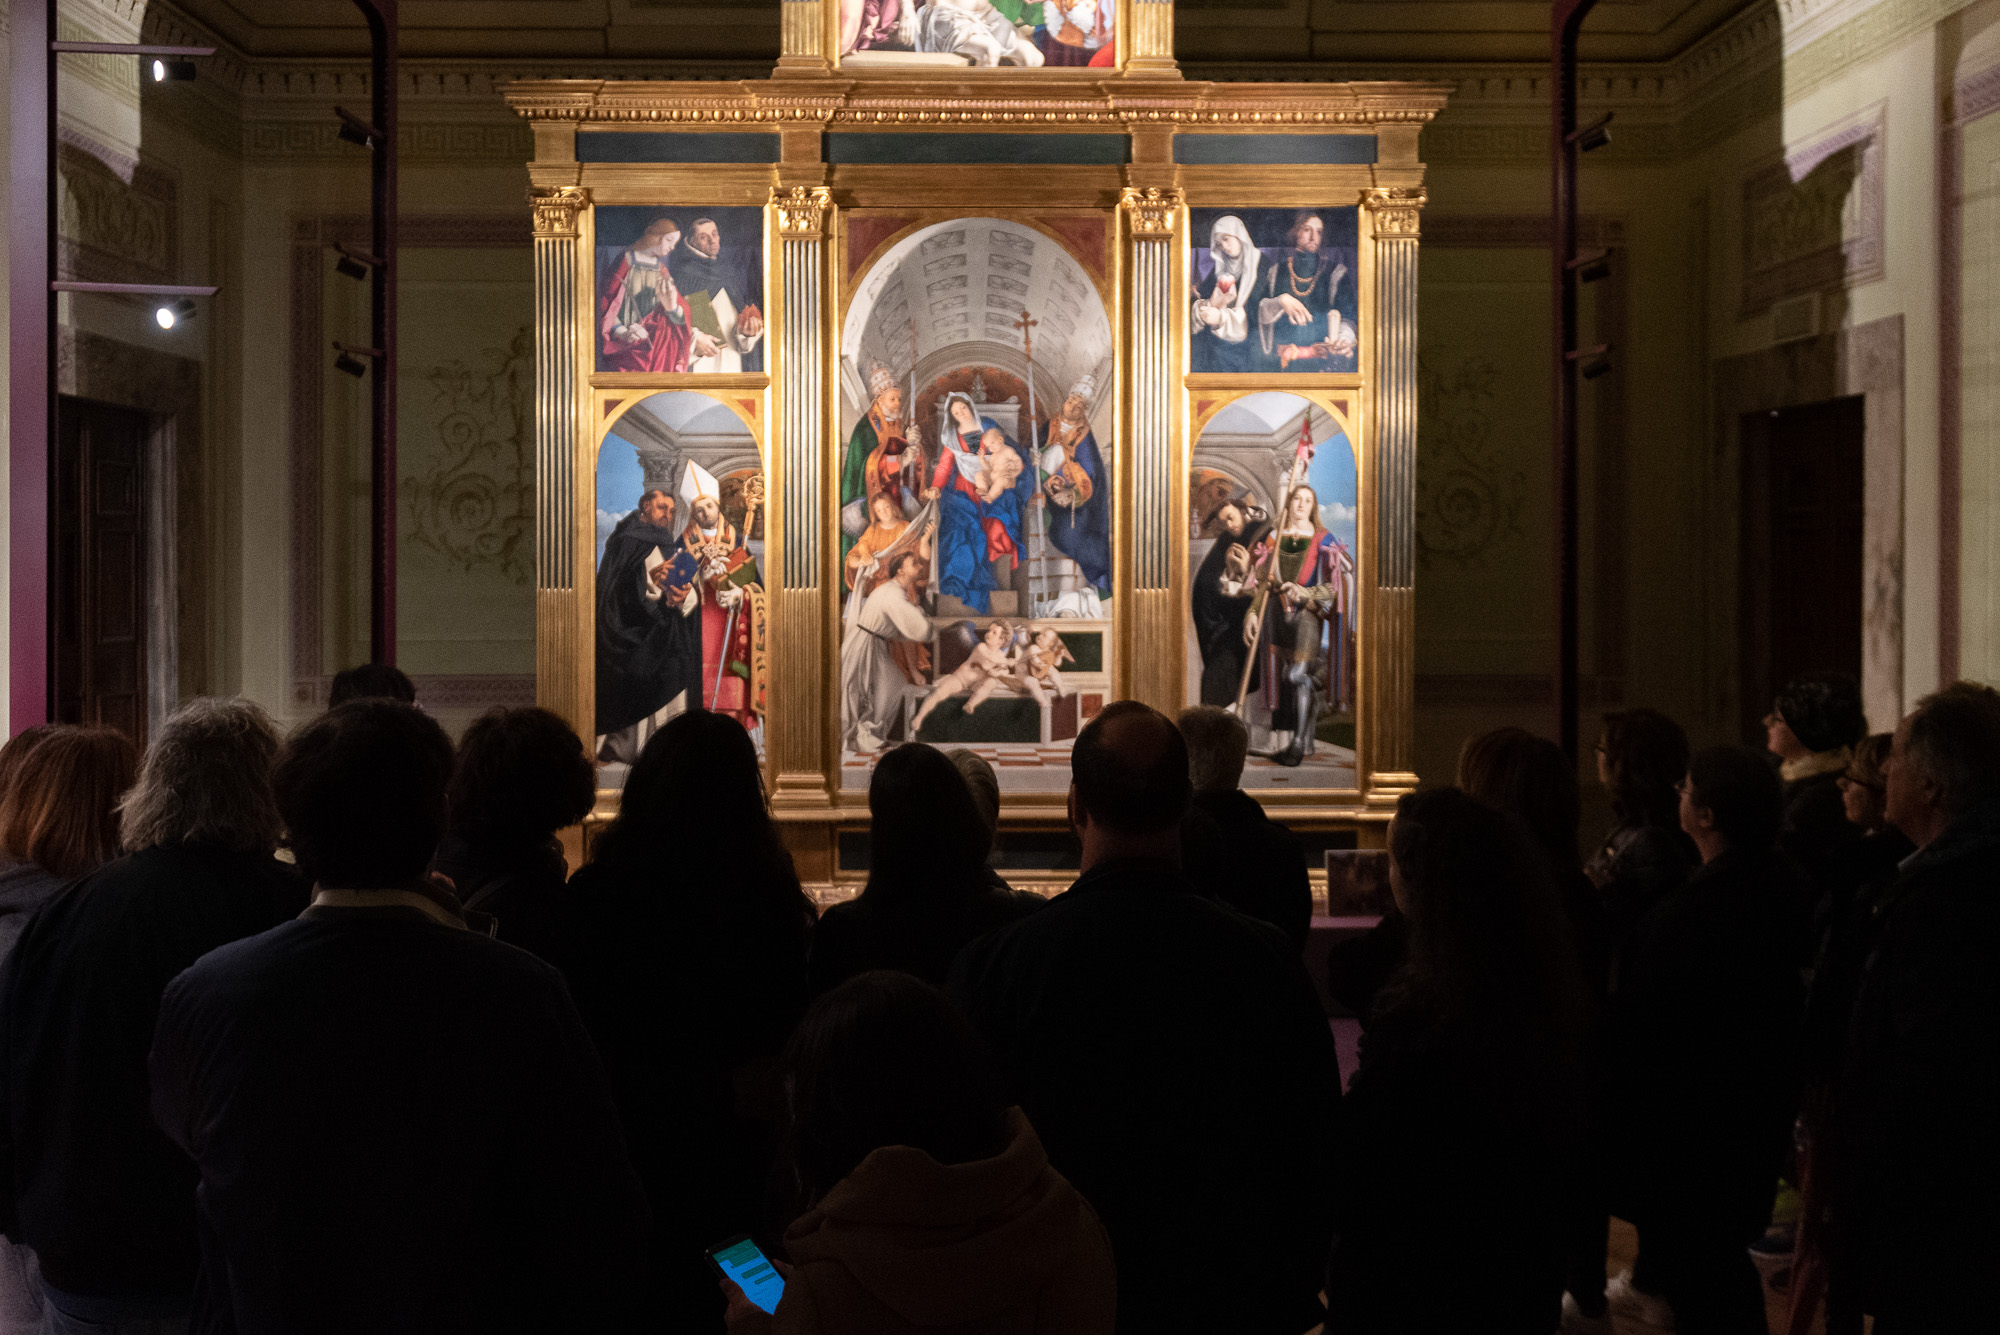 Notte dei musei, Recanati fa sold out